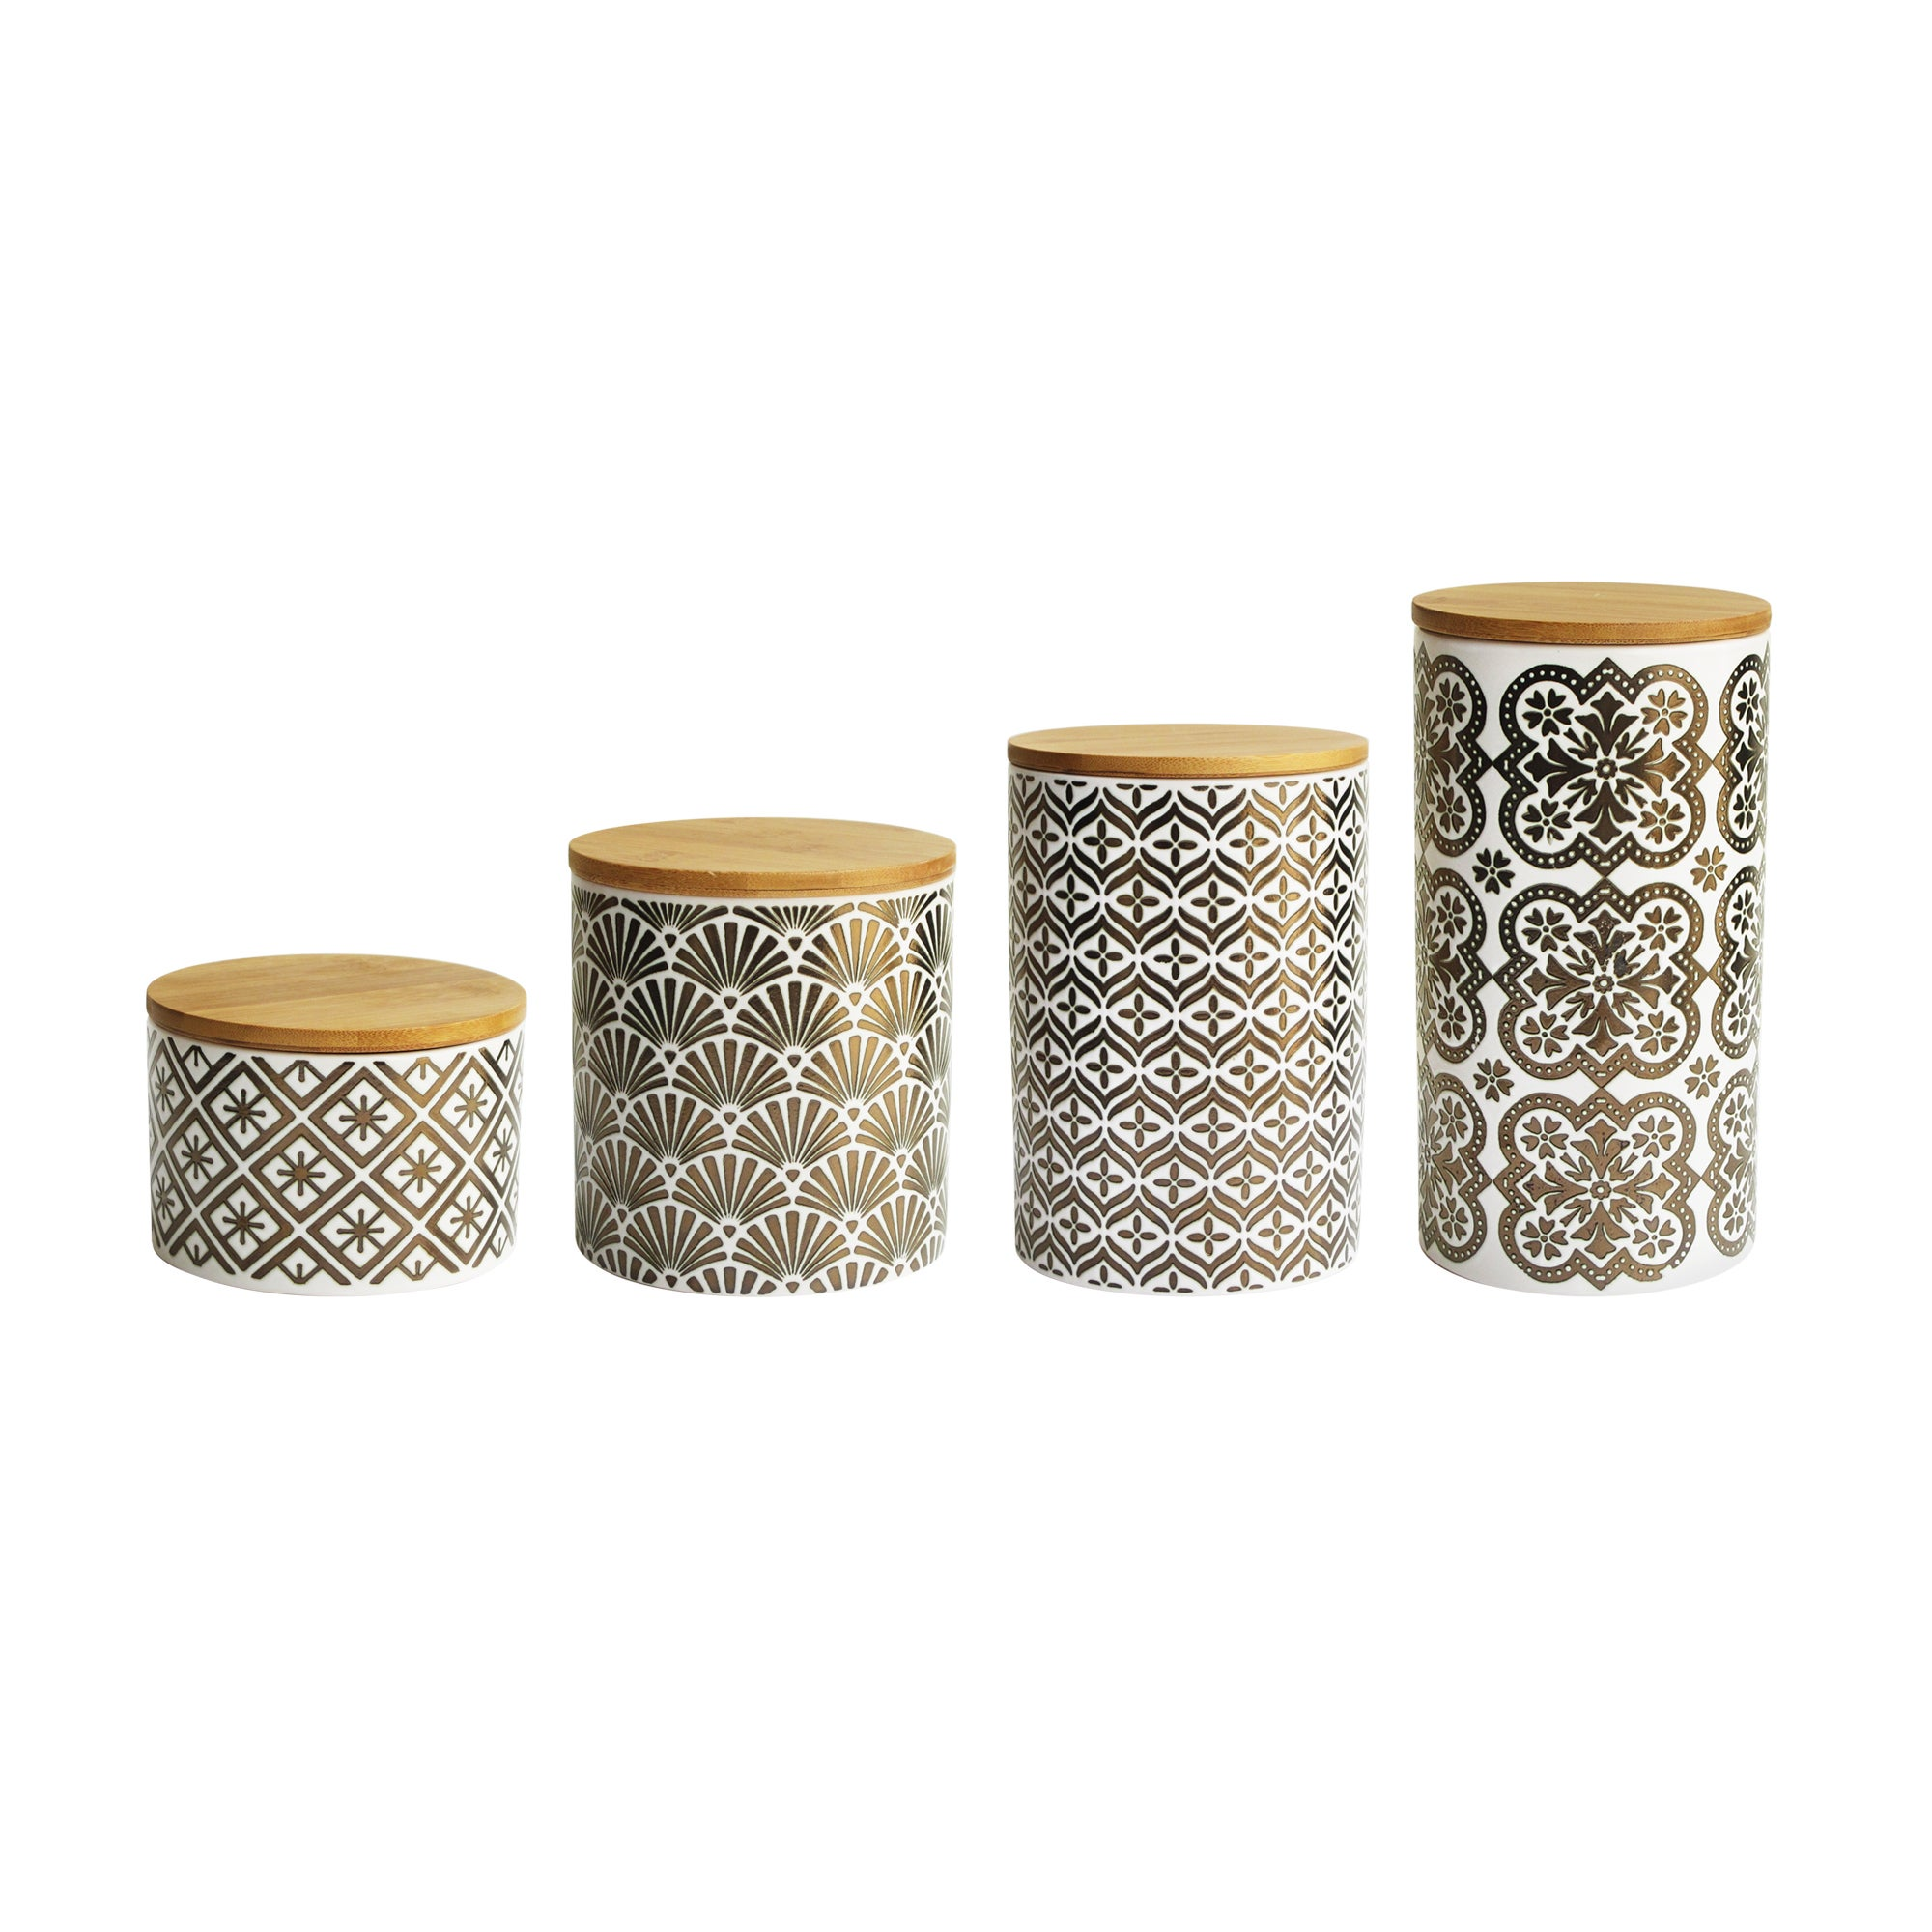 Details about Canister Set 4 Piece Metallic Gold White Earthenware Kitchen  Counter Home Decor